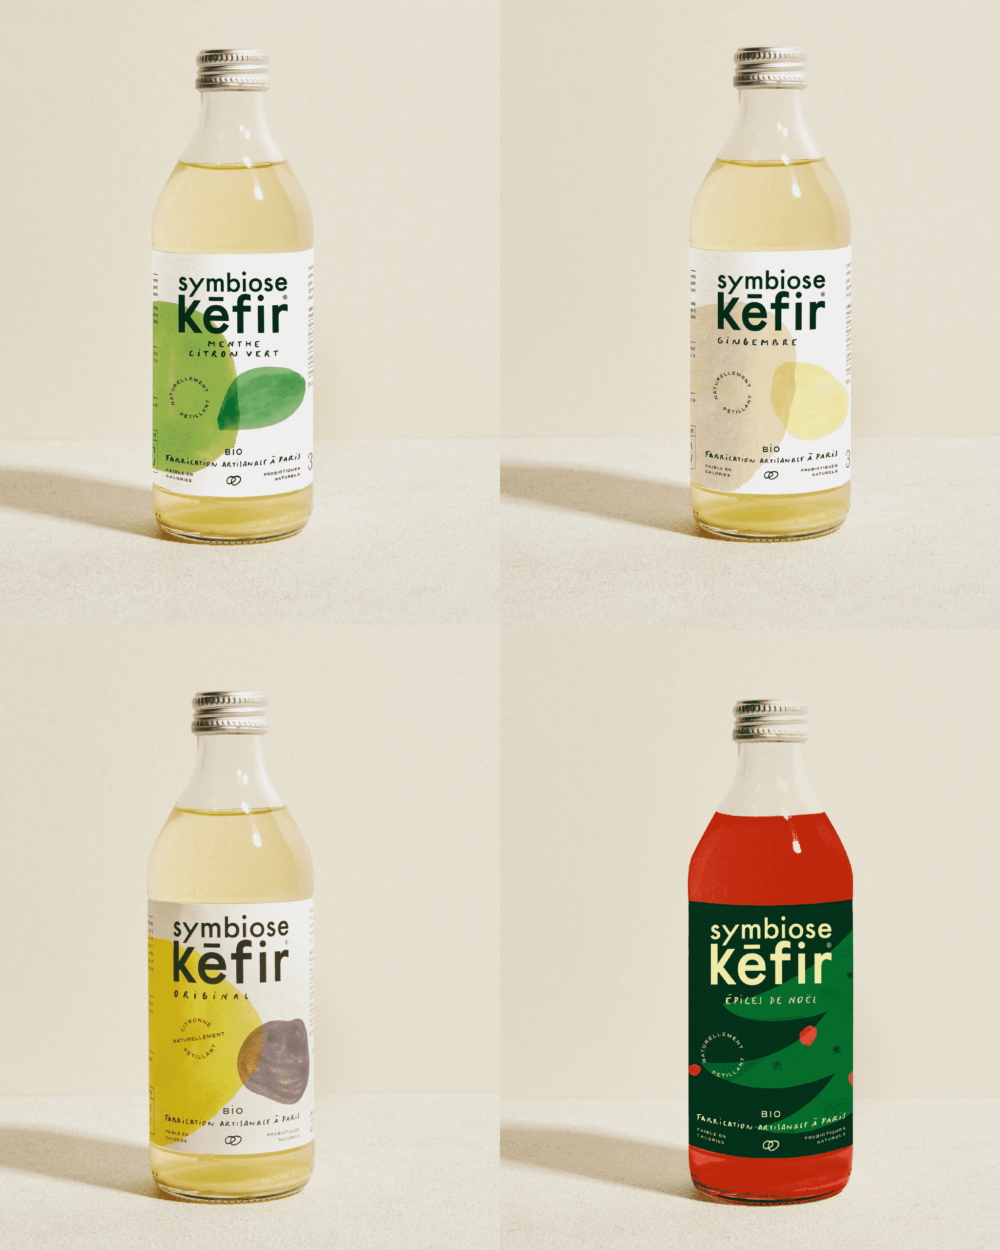 Gamme de kéfir de fruits Symbiose